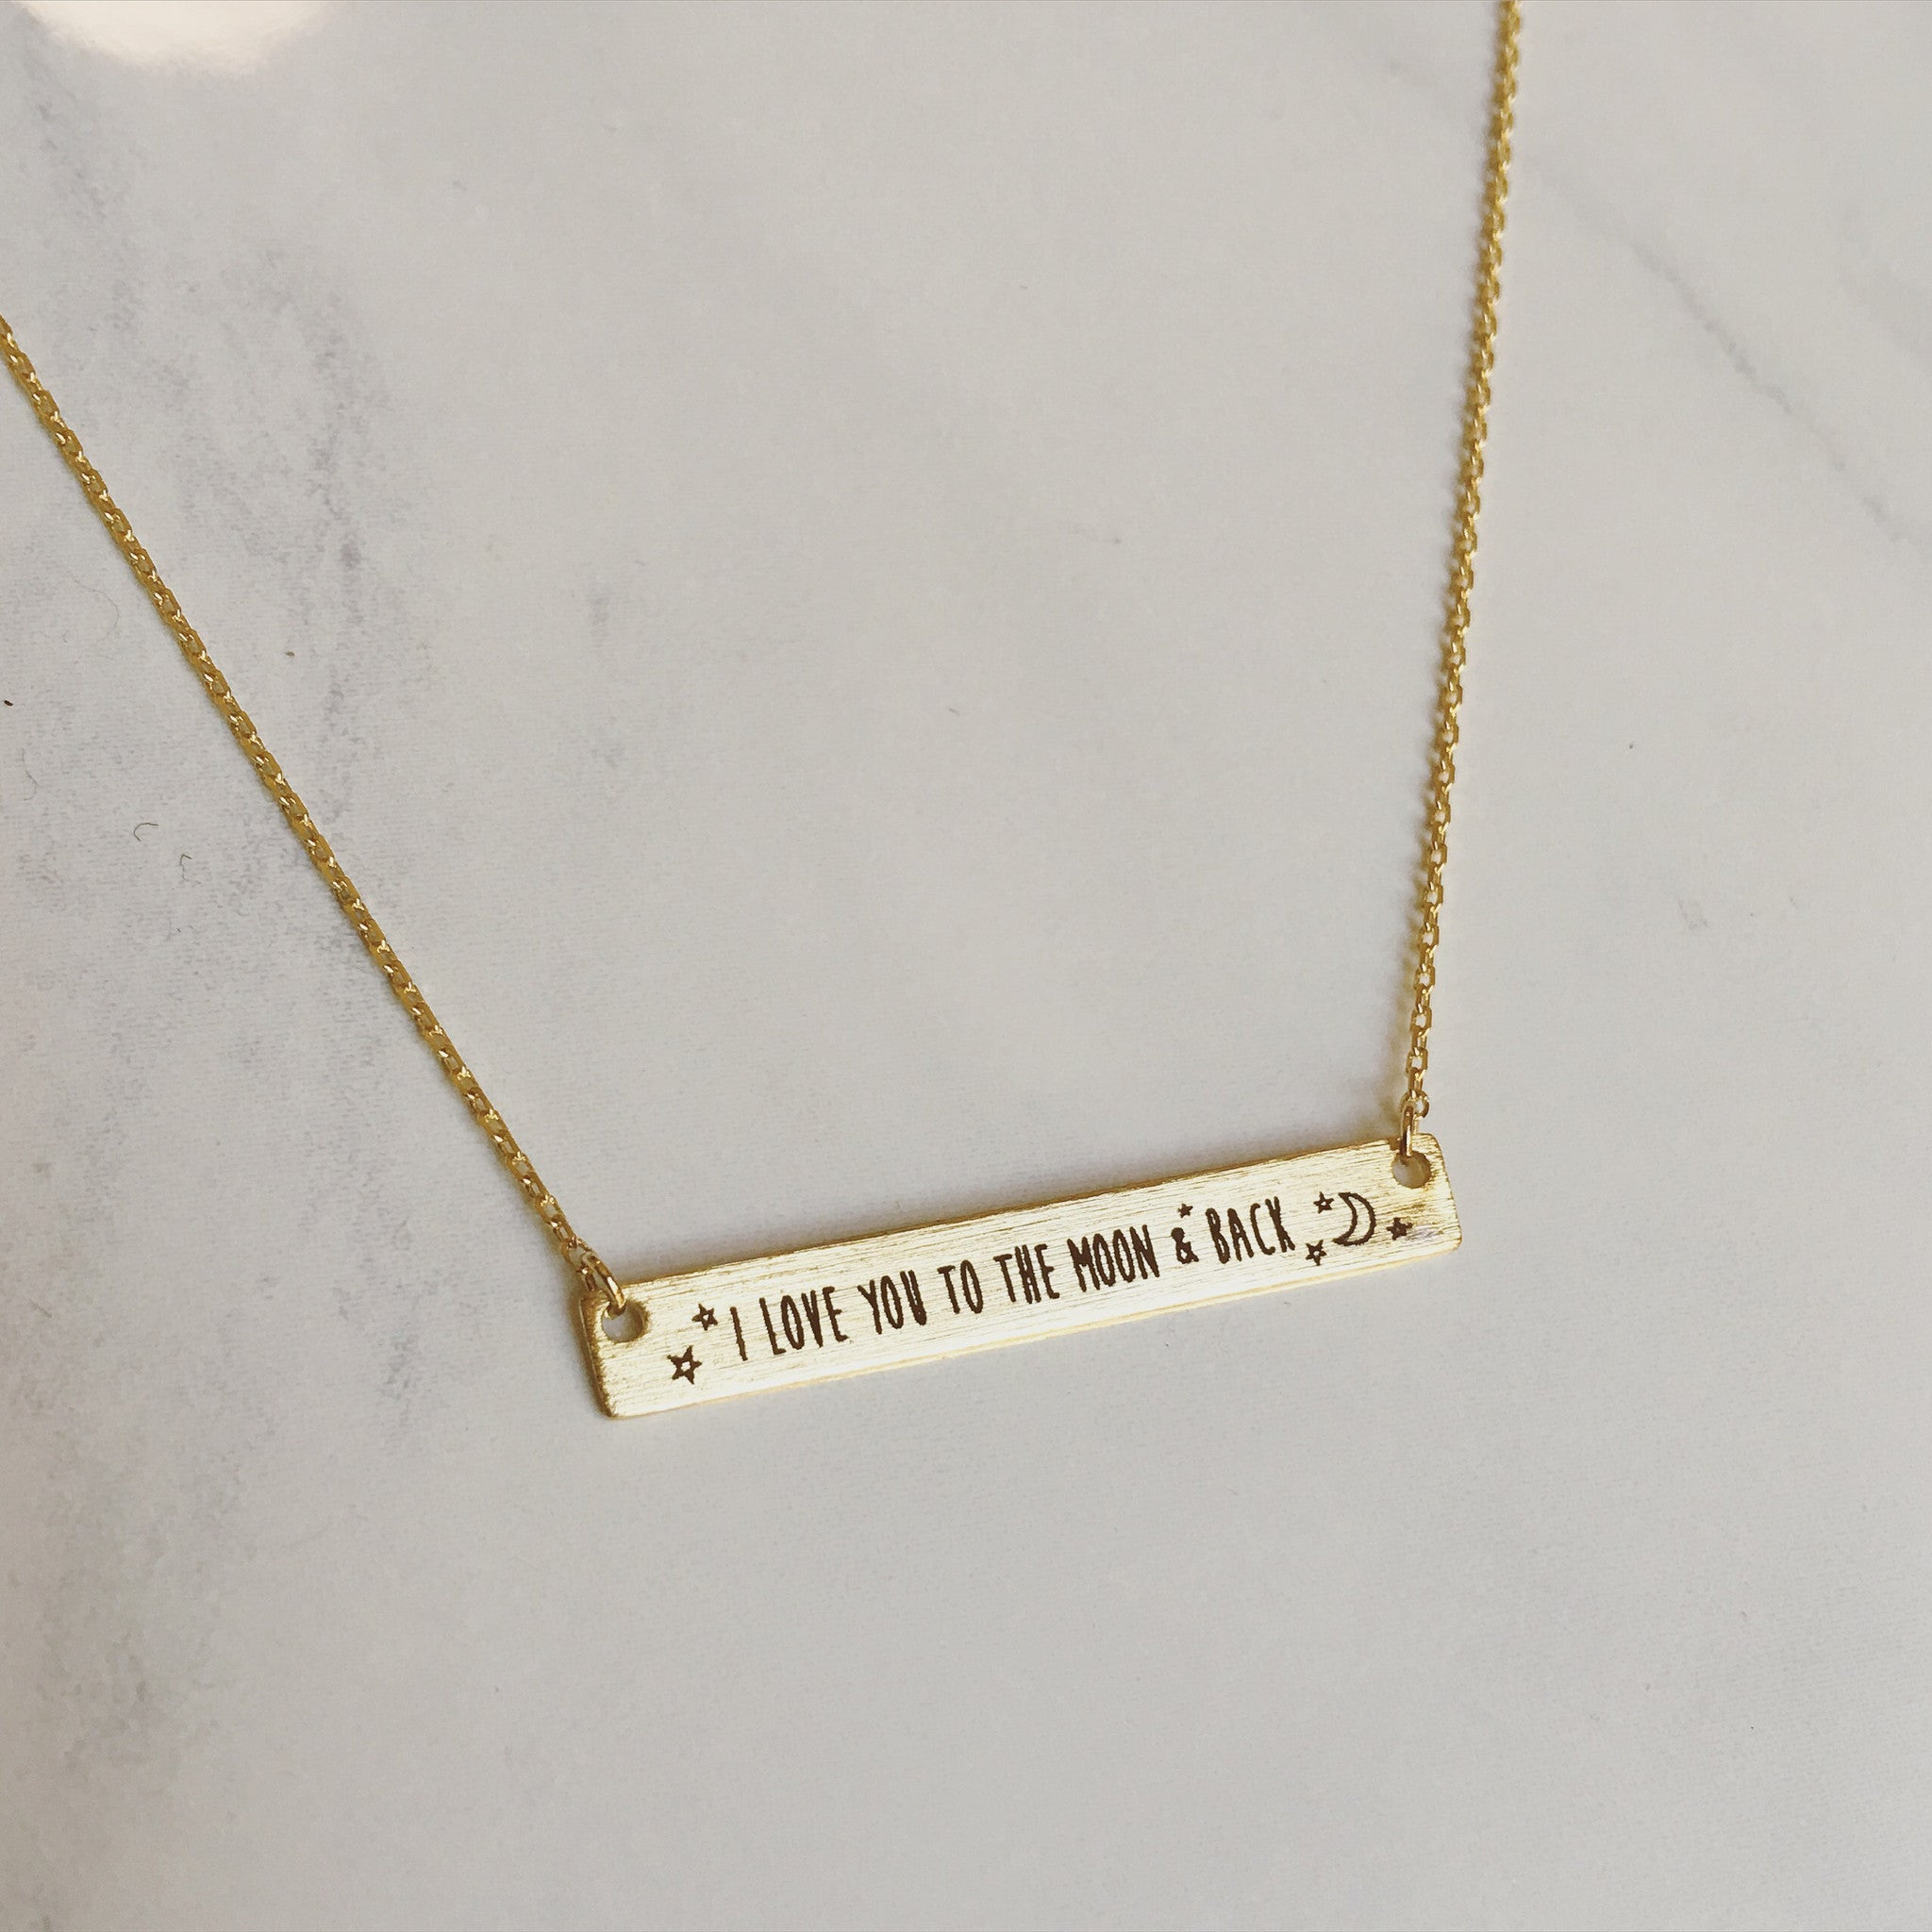 I LOVE YOU TO THE MOON & BACK - Necklace